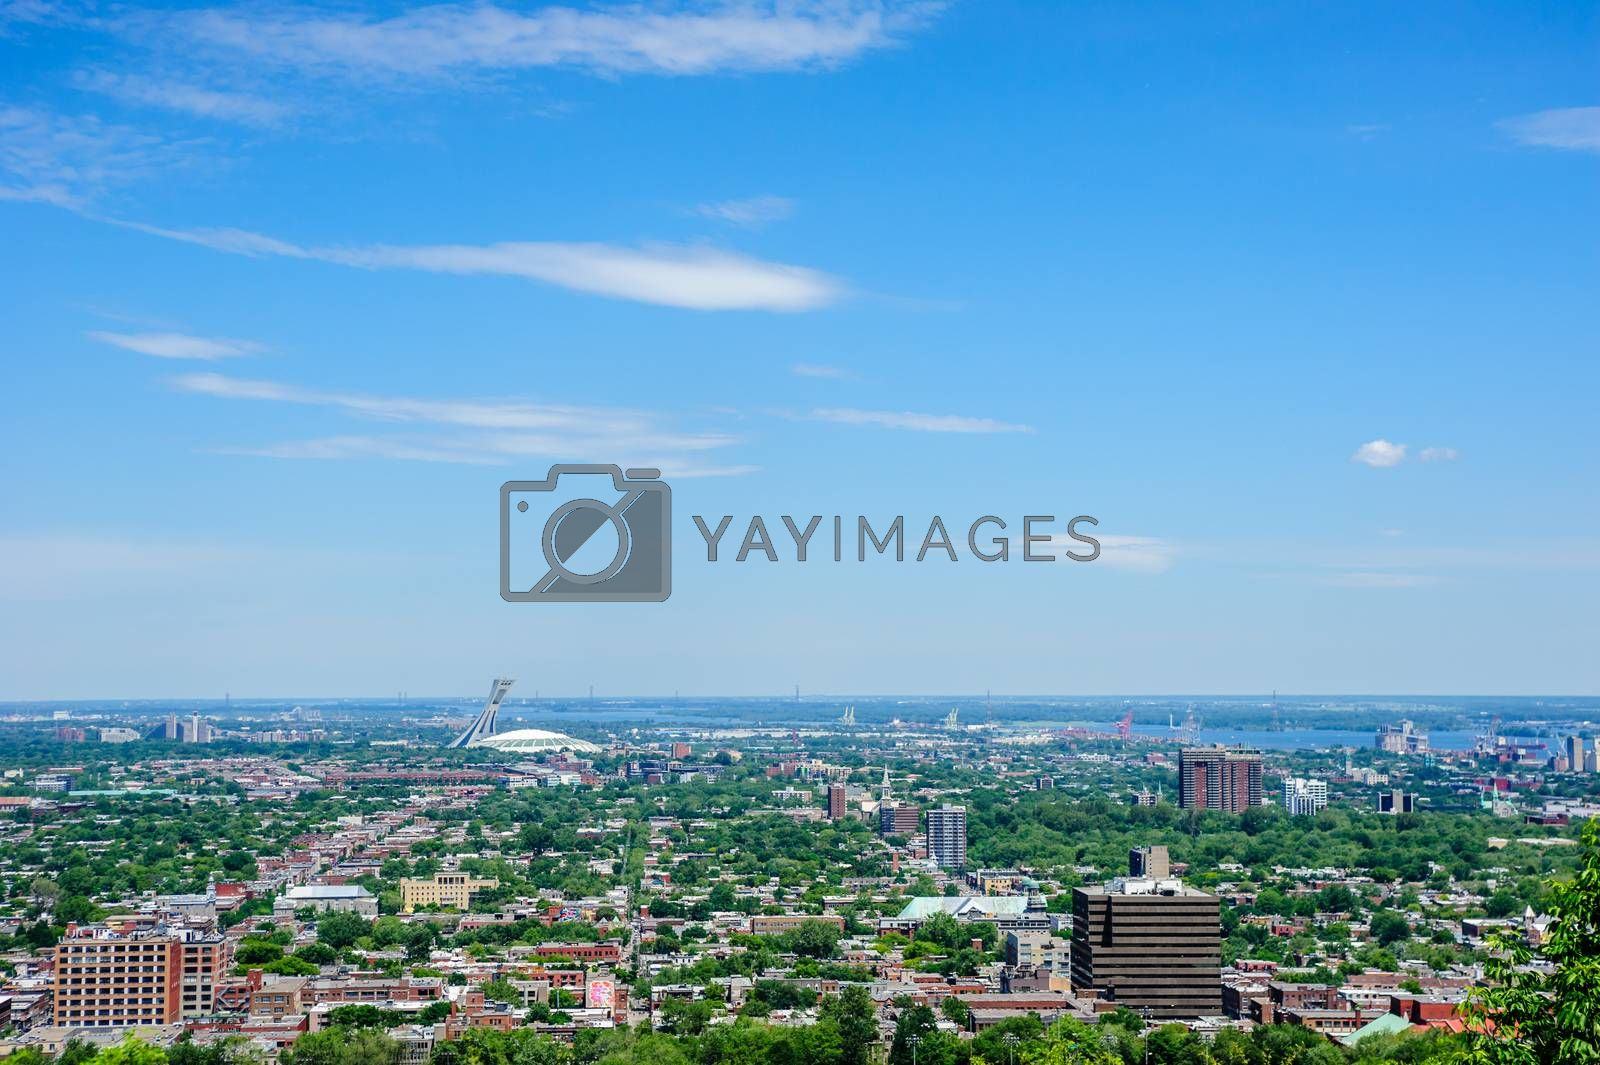 MONTREAL, CANADA - JUNE 16, 2018: The Olympic Stadium and low-rise buildings can be seen looking north-east from Mount Royal.